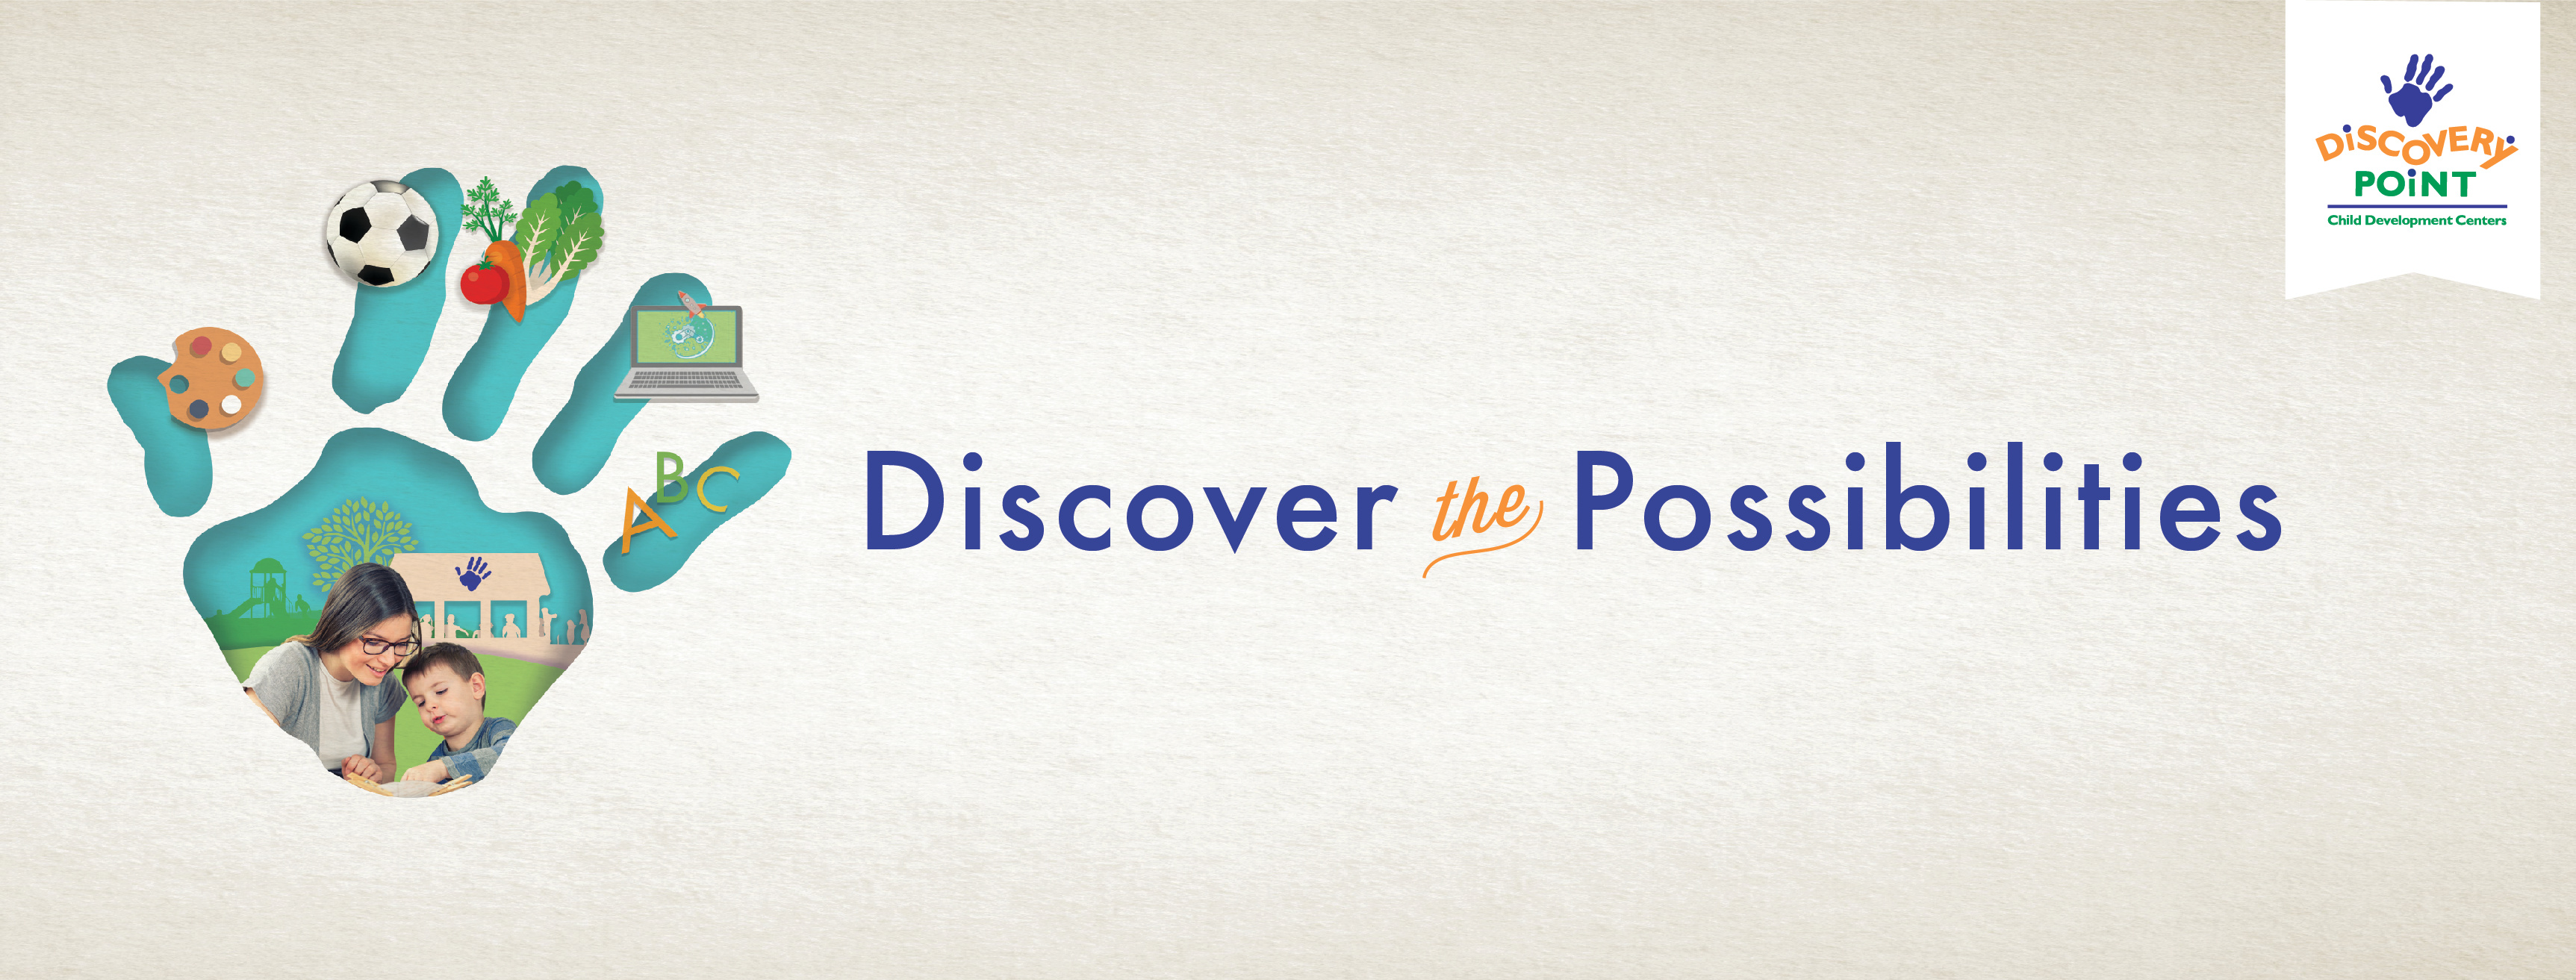 Discover the Possibilities campaign desi